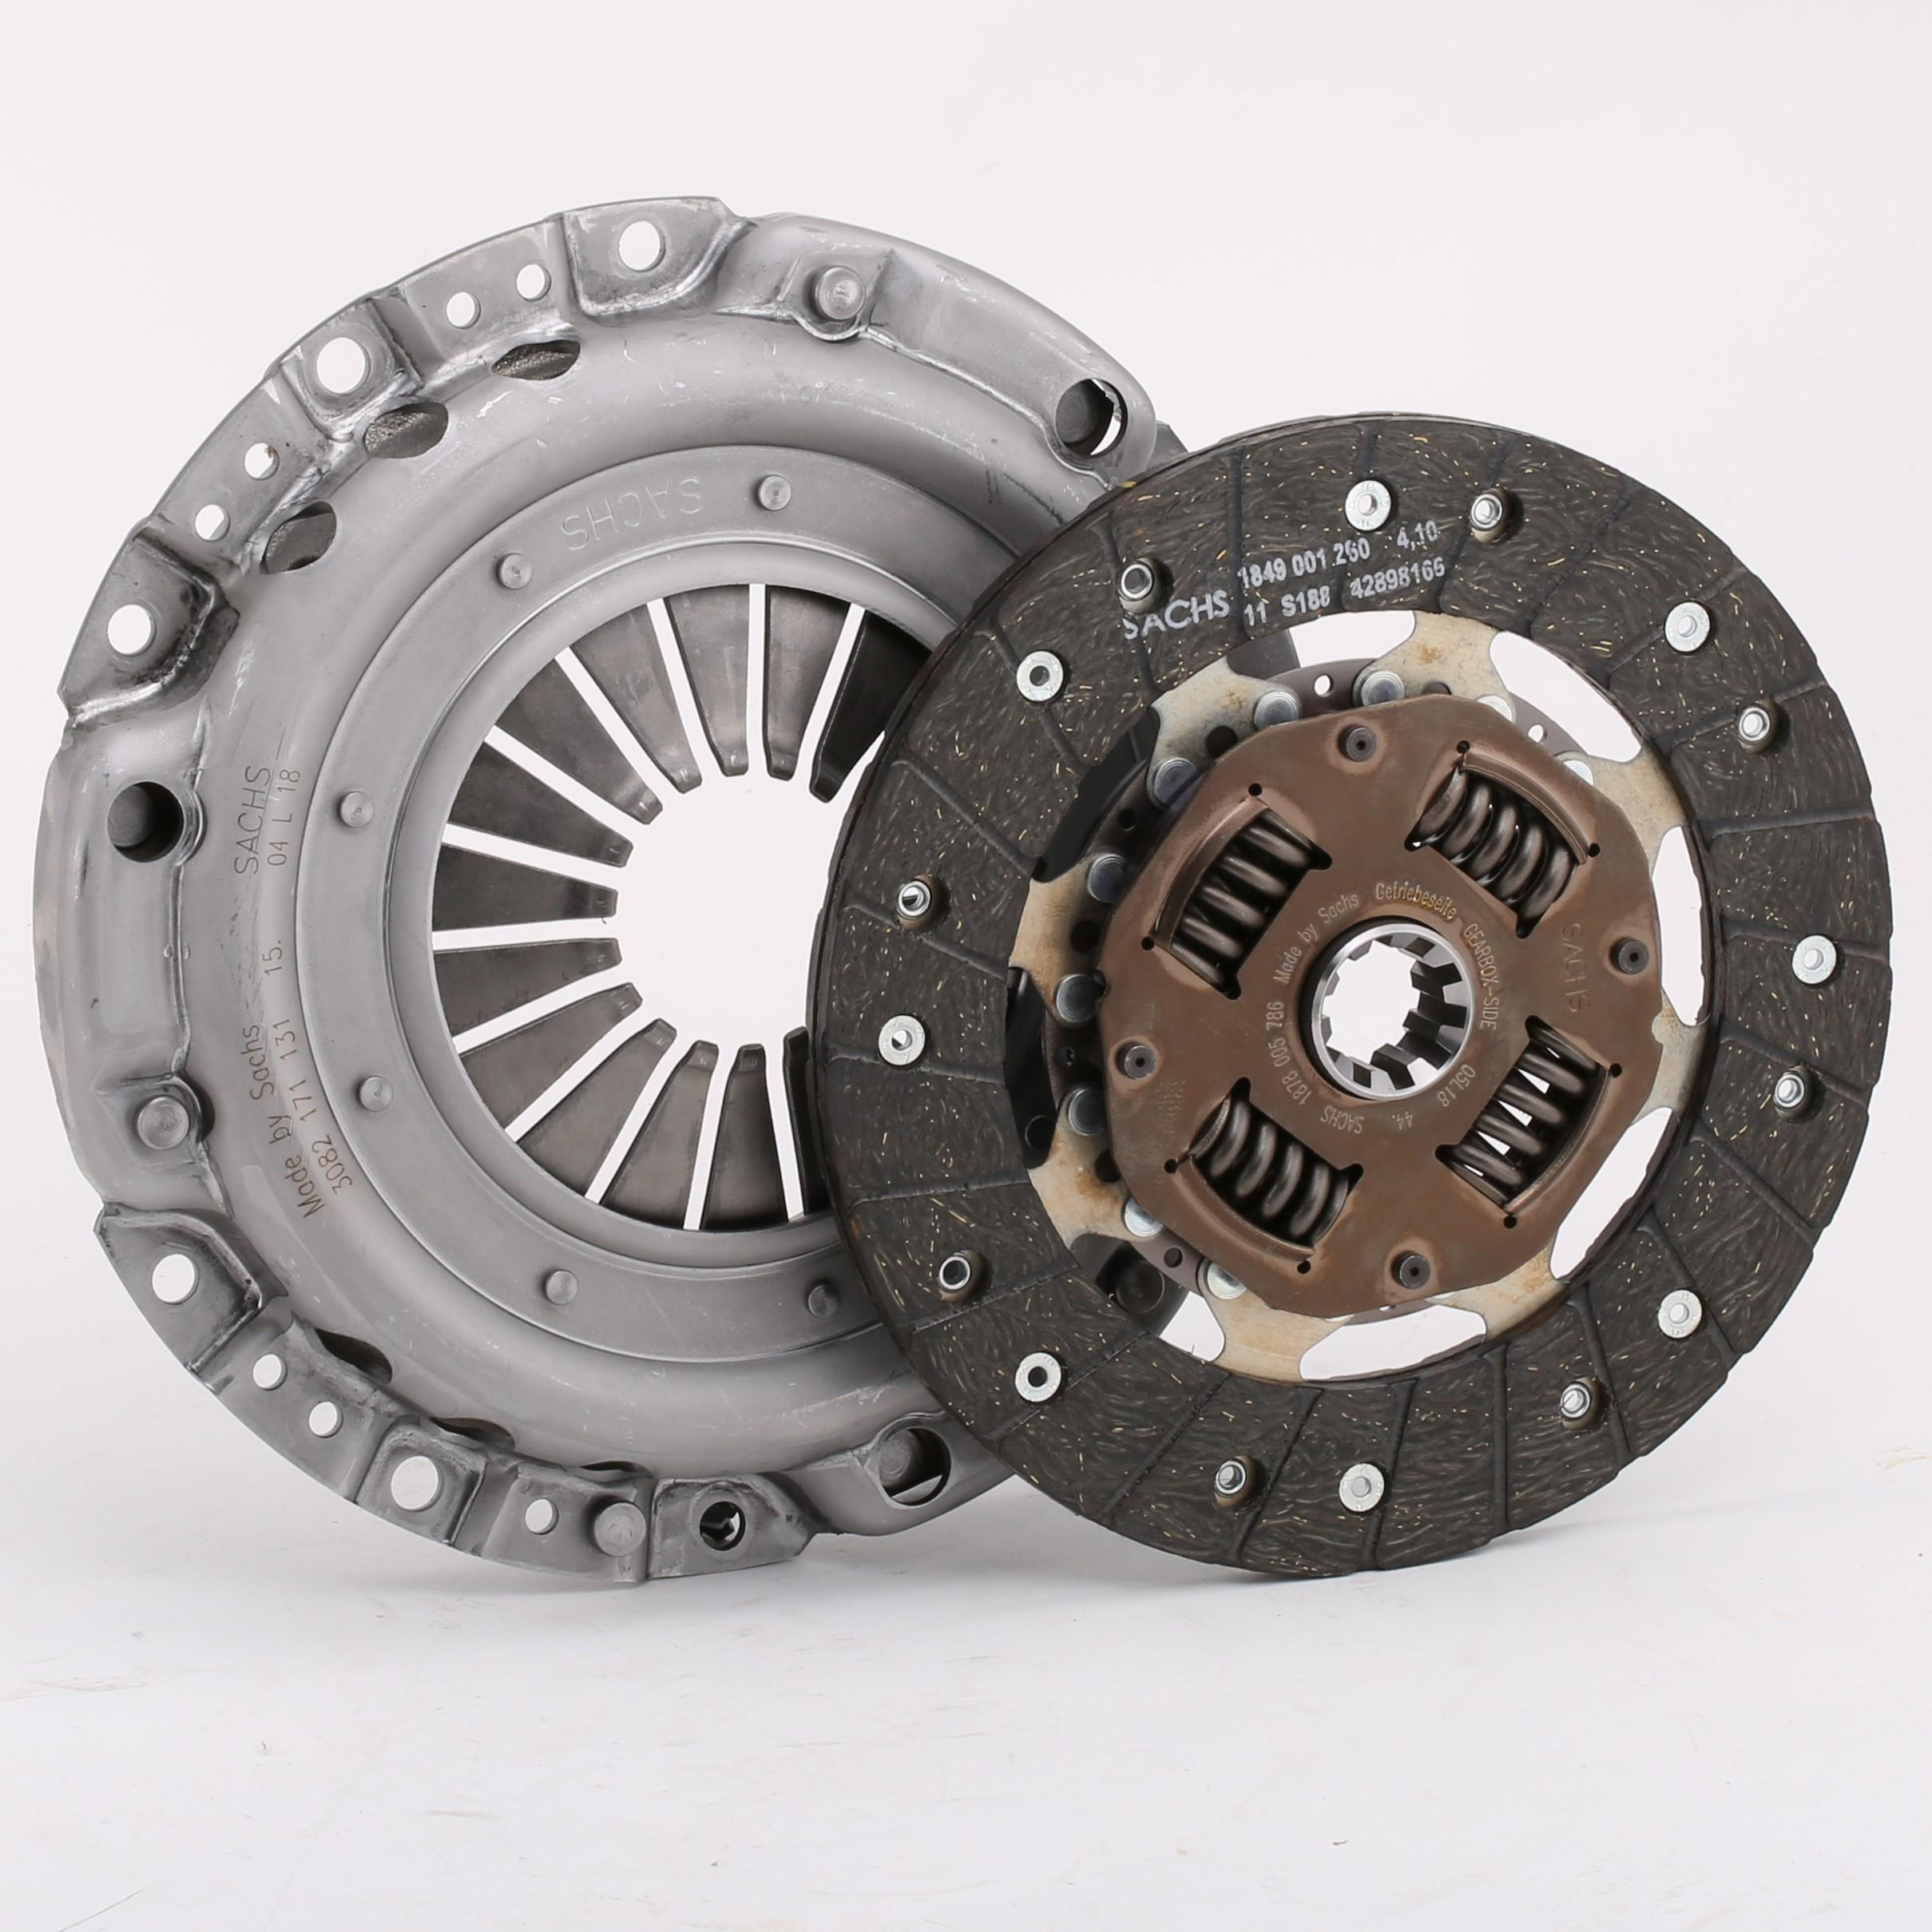 3000 203 002 Complete clutch kit SACHS - Cheap brand products